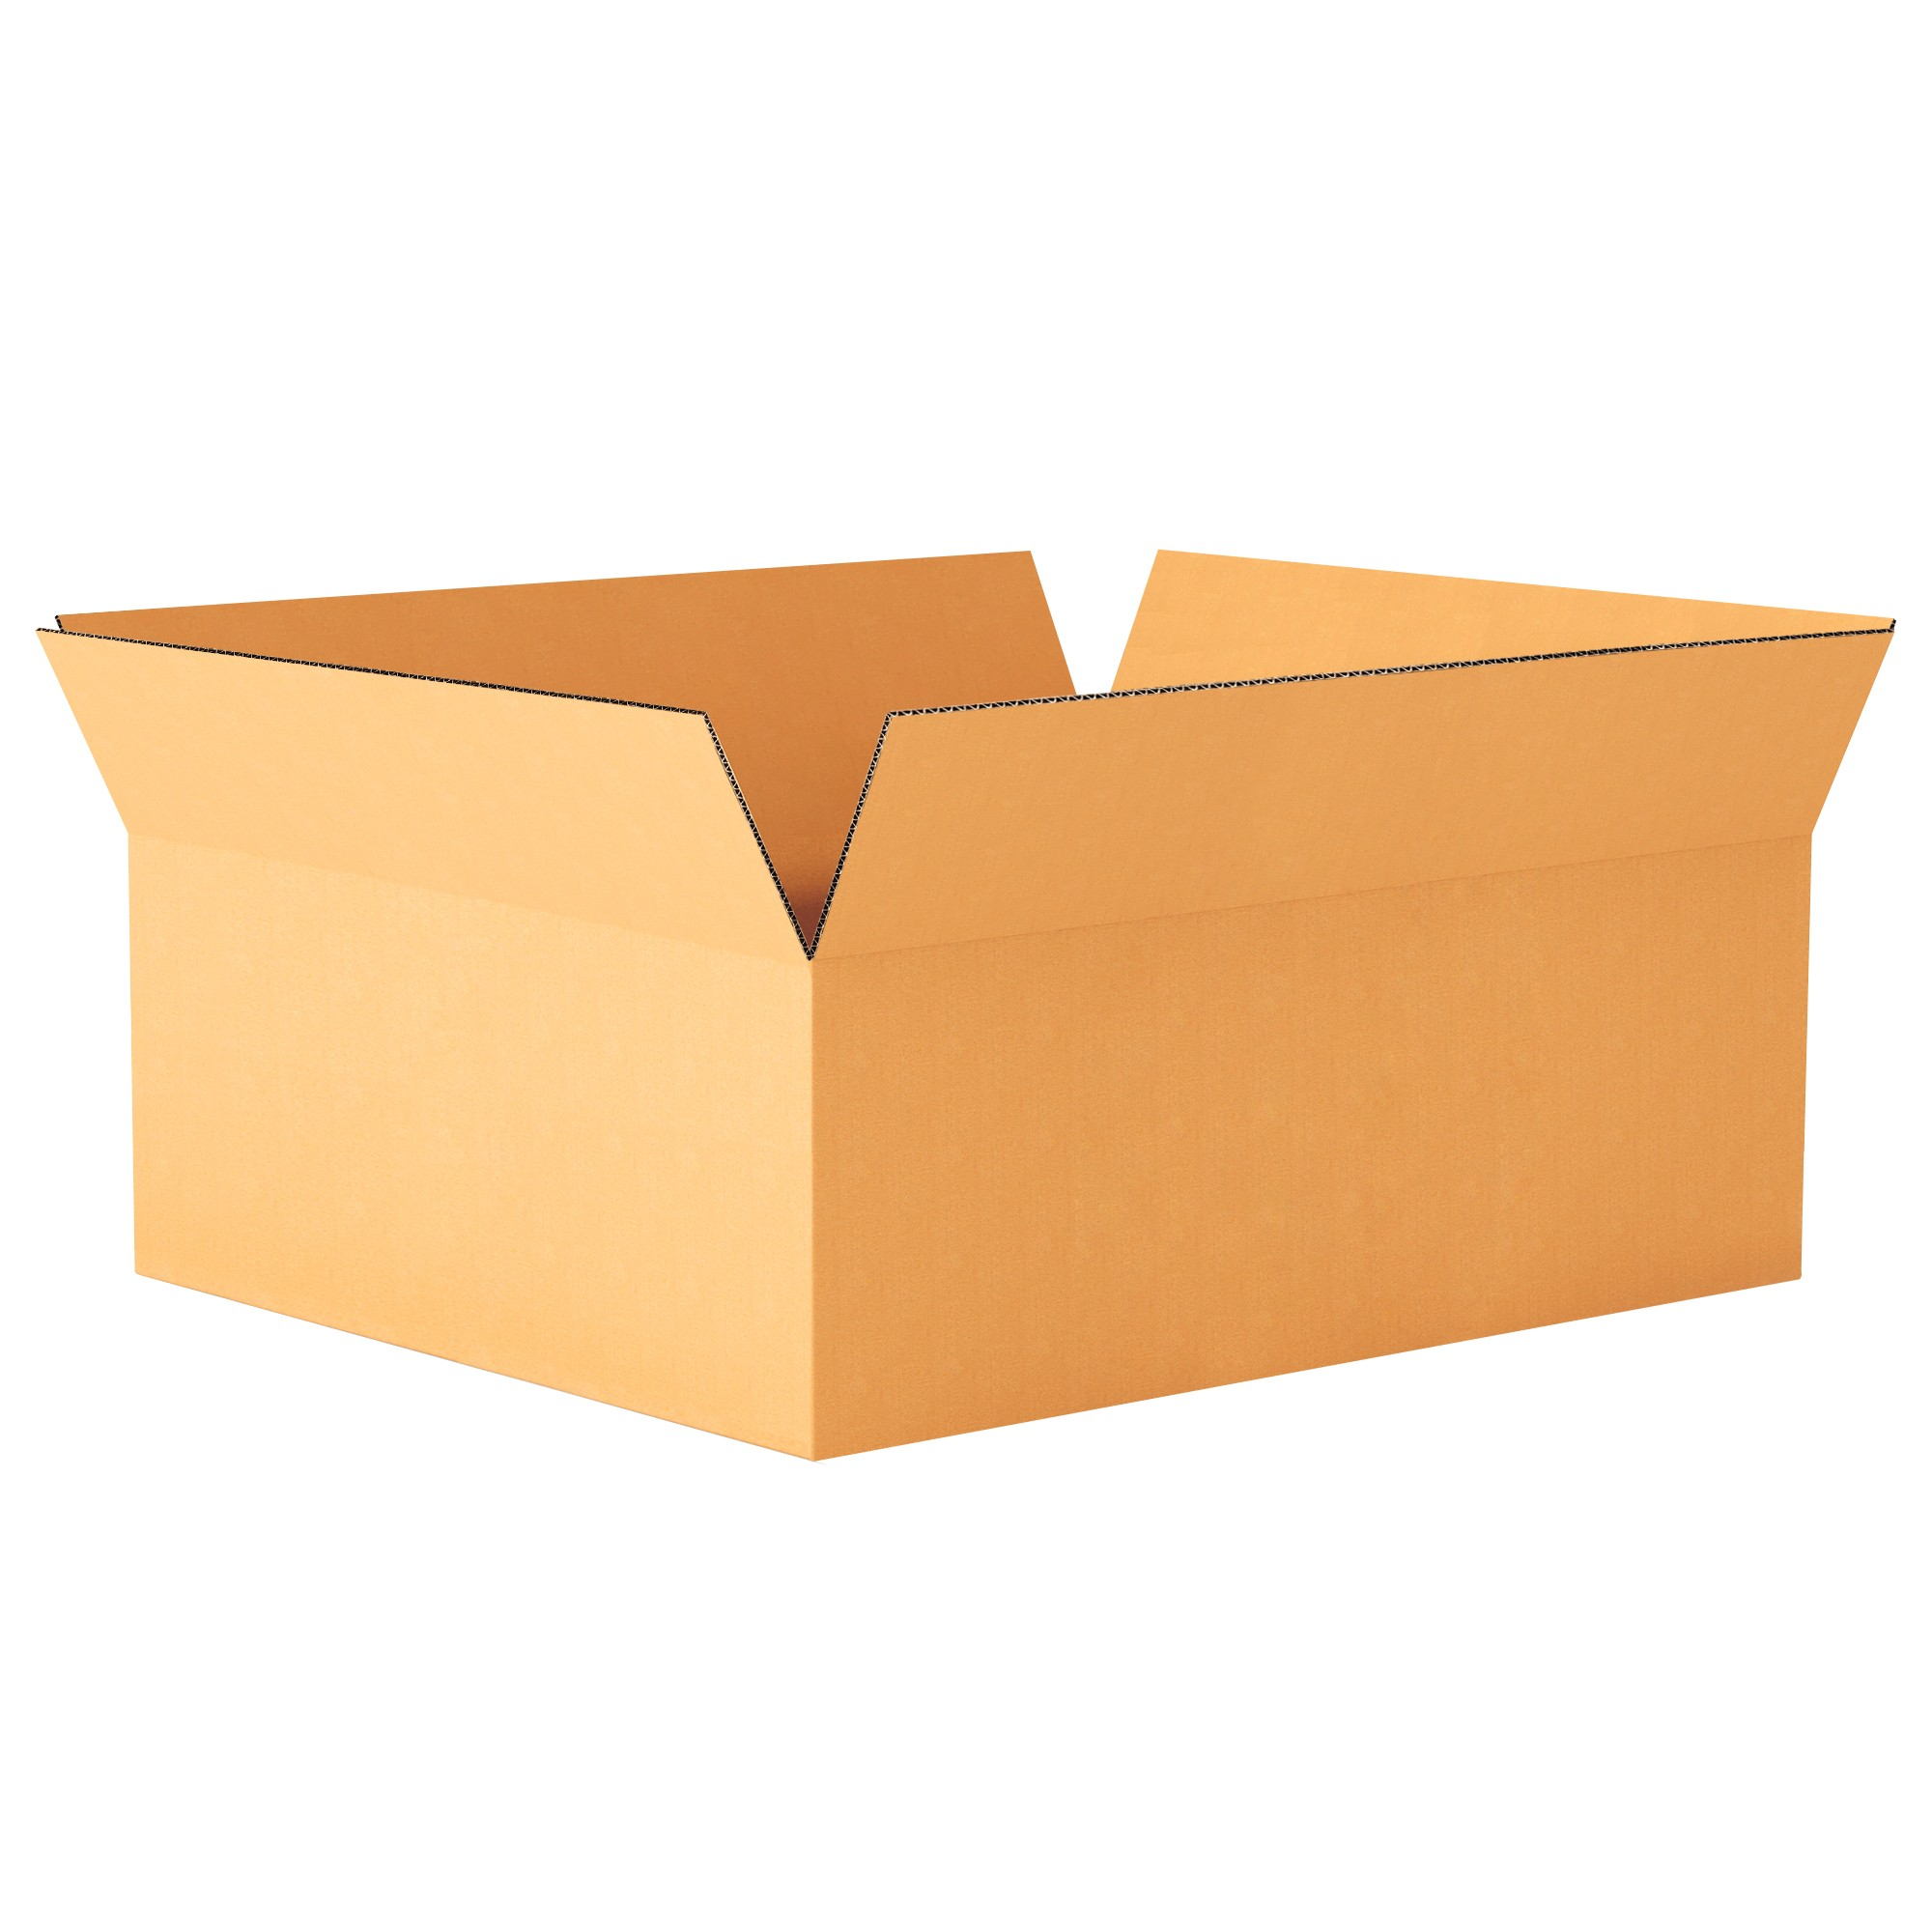 """TOTALPACK® 17 x 16 x 8 1/2"""" Single Wall Corrugated Boxes 15 Units"""